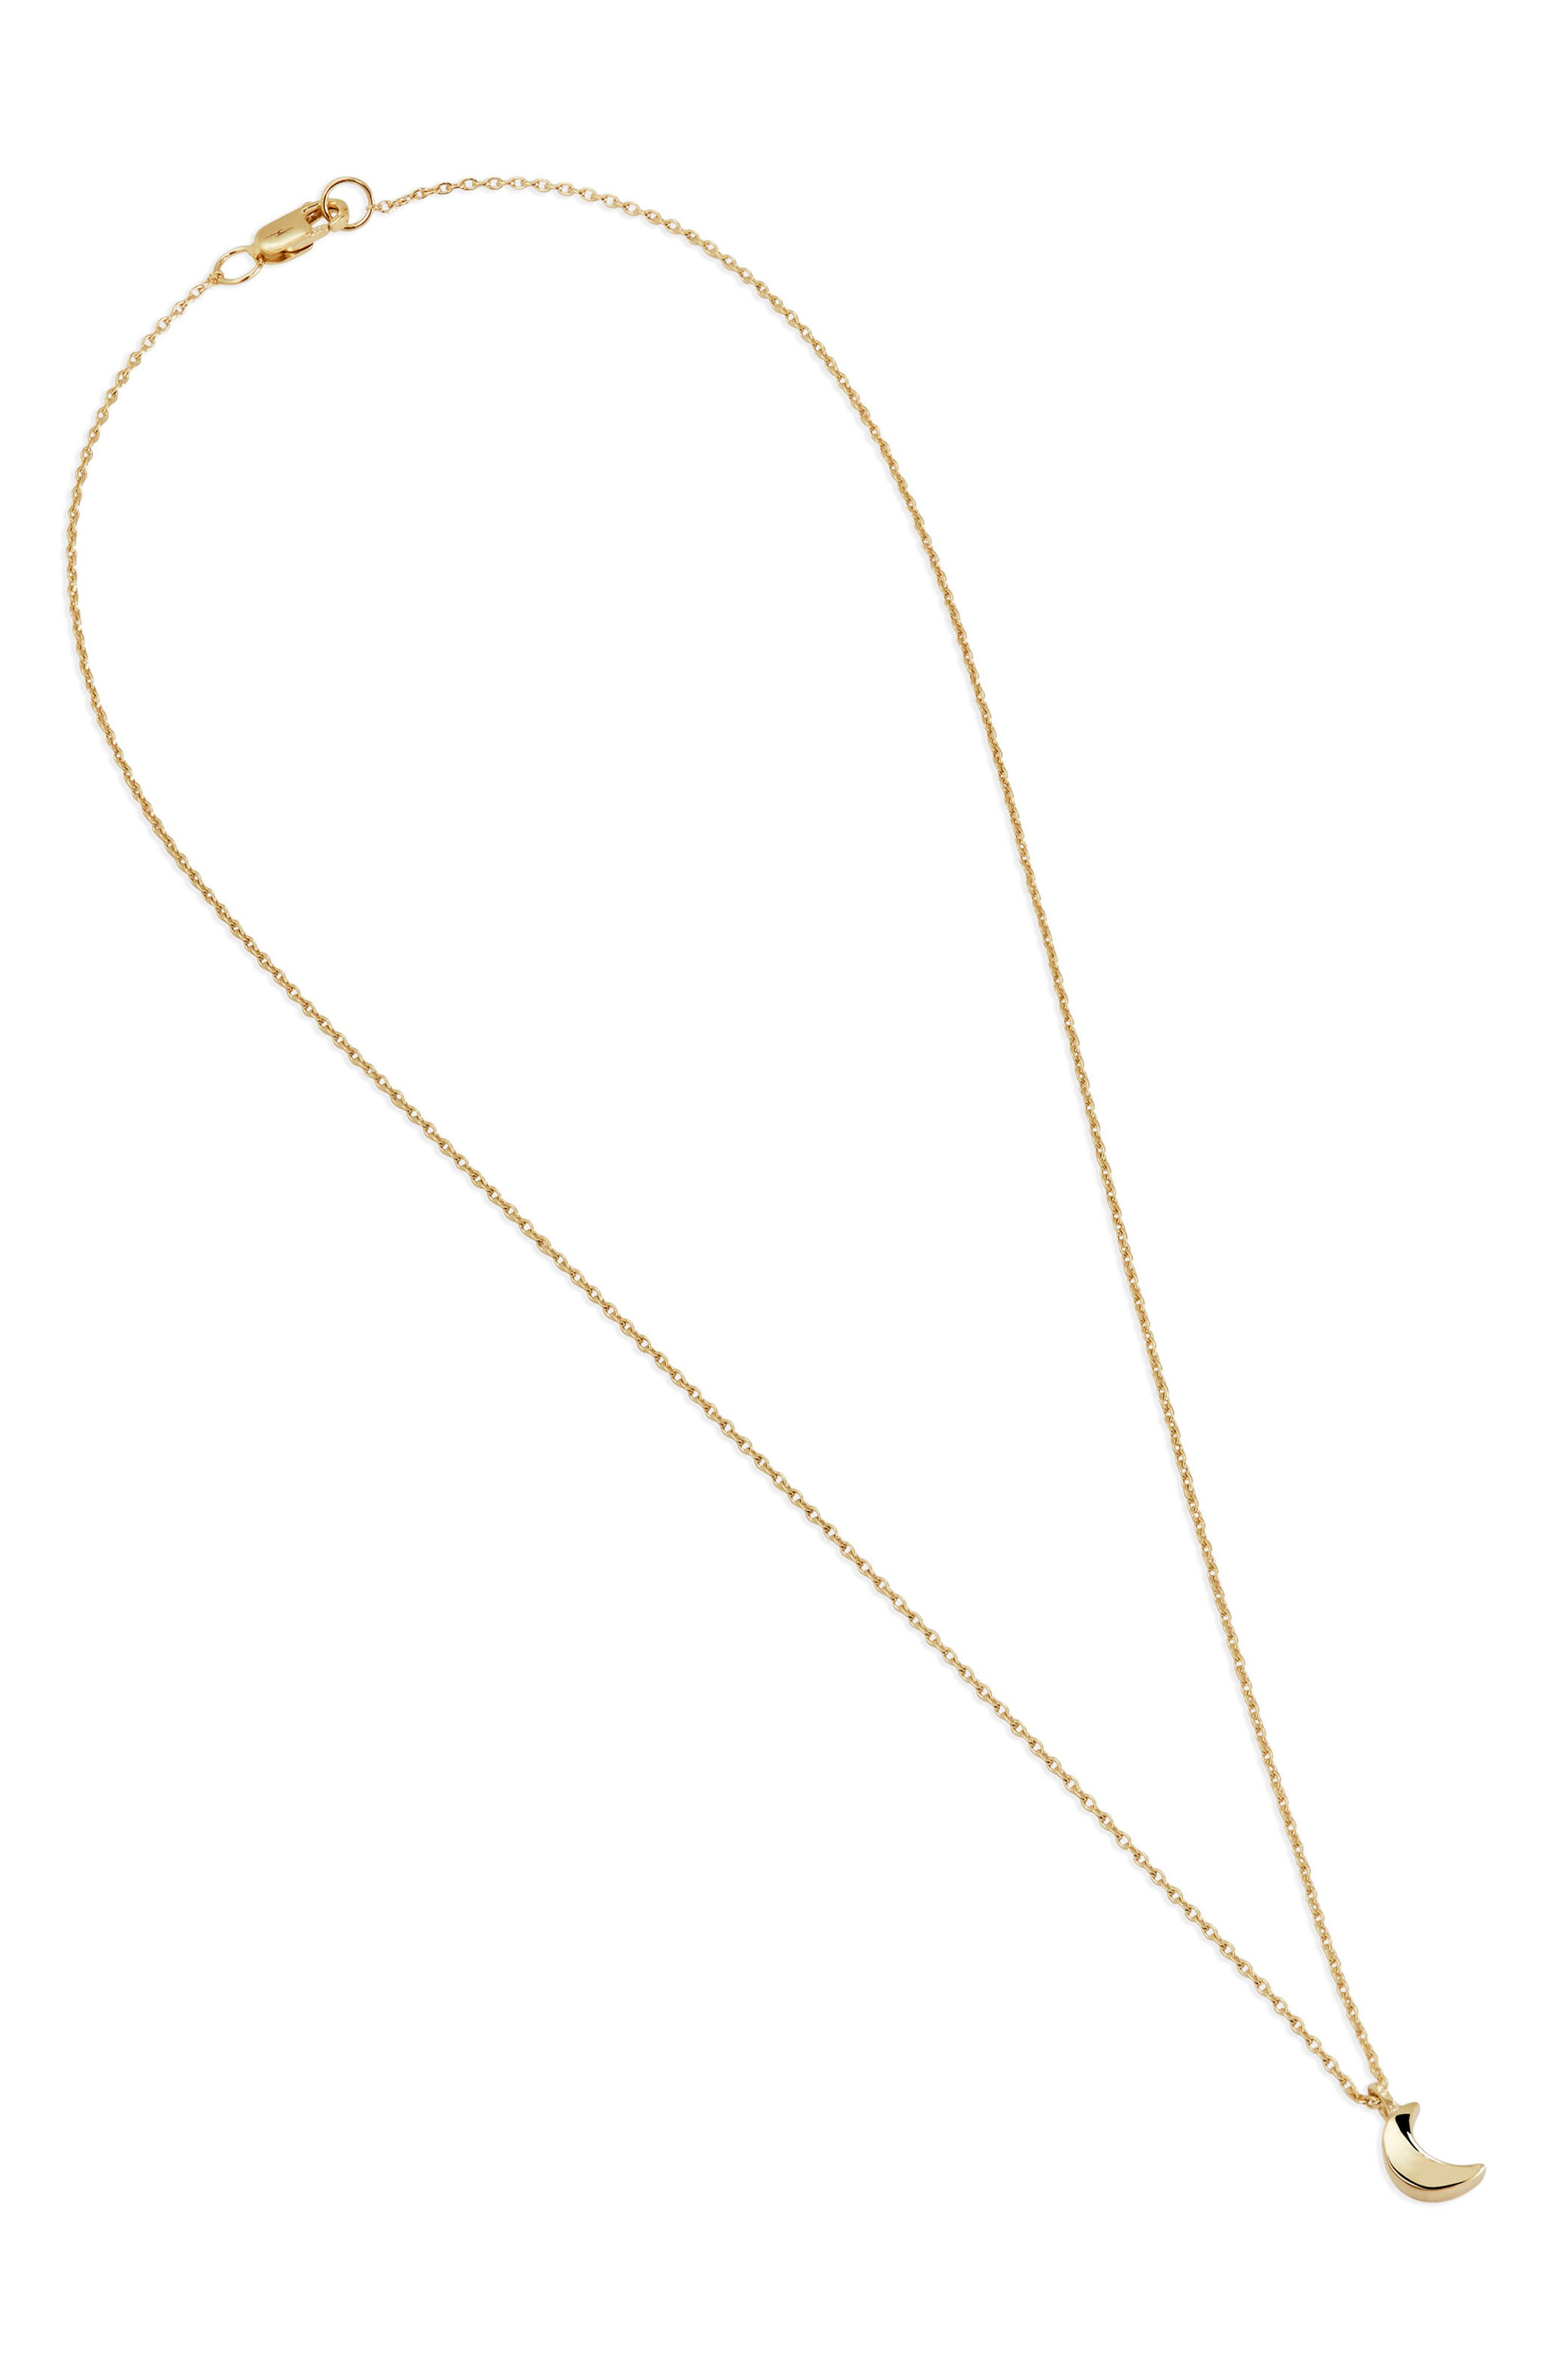 Crescent Moon Charm Necklace,                             Alternate thumbnail 3, color,                             14K Gold